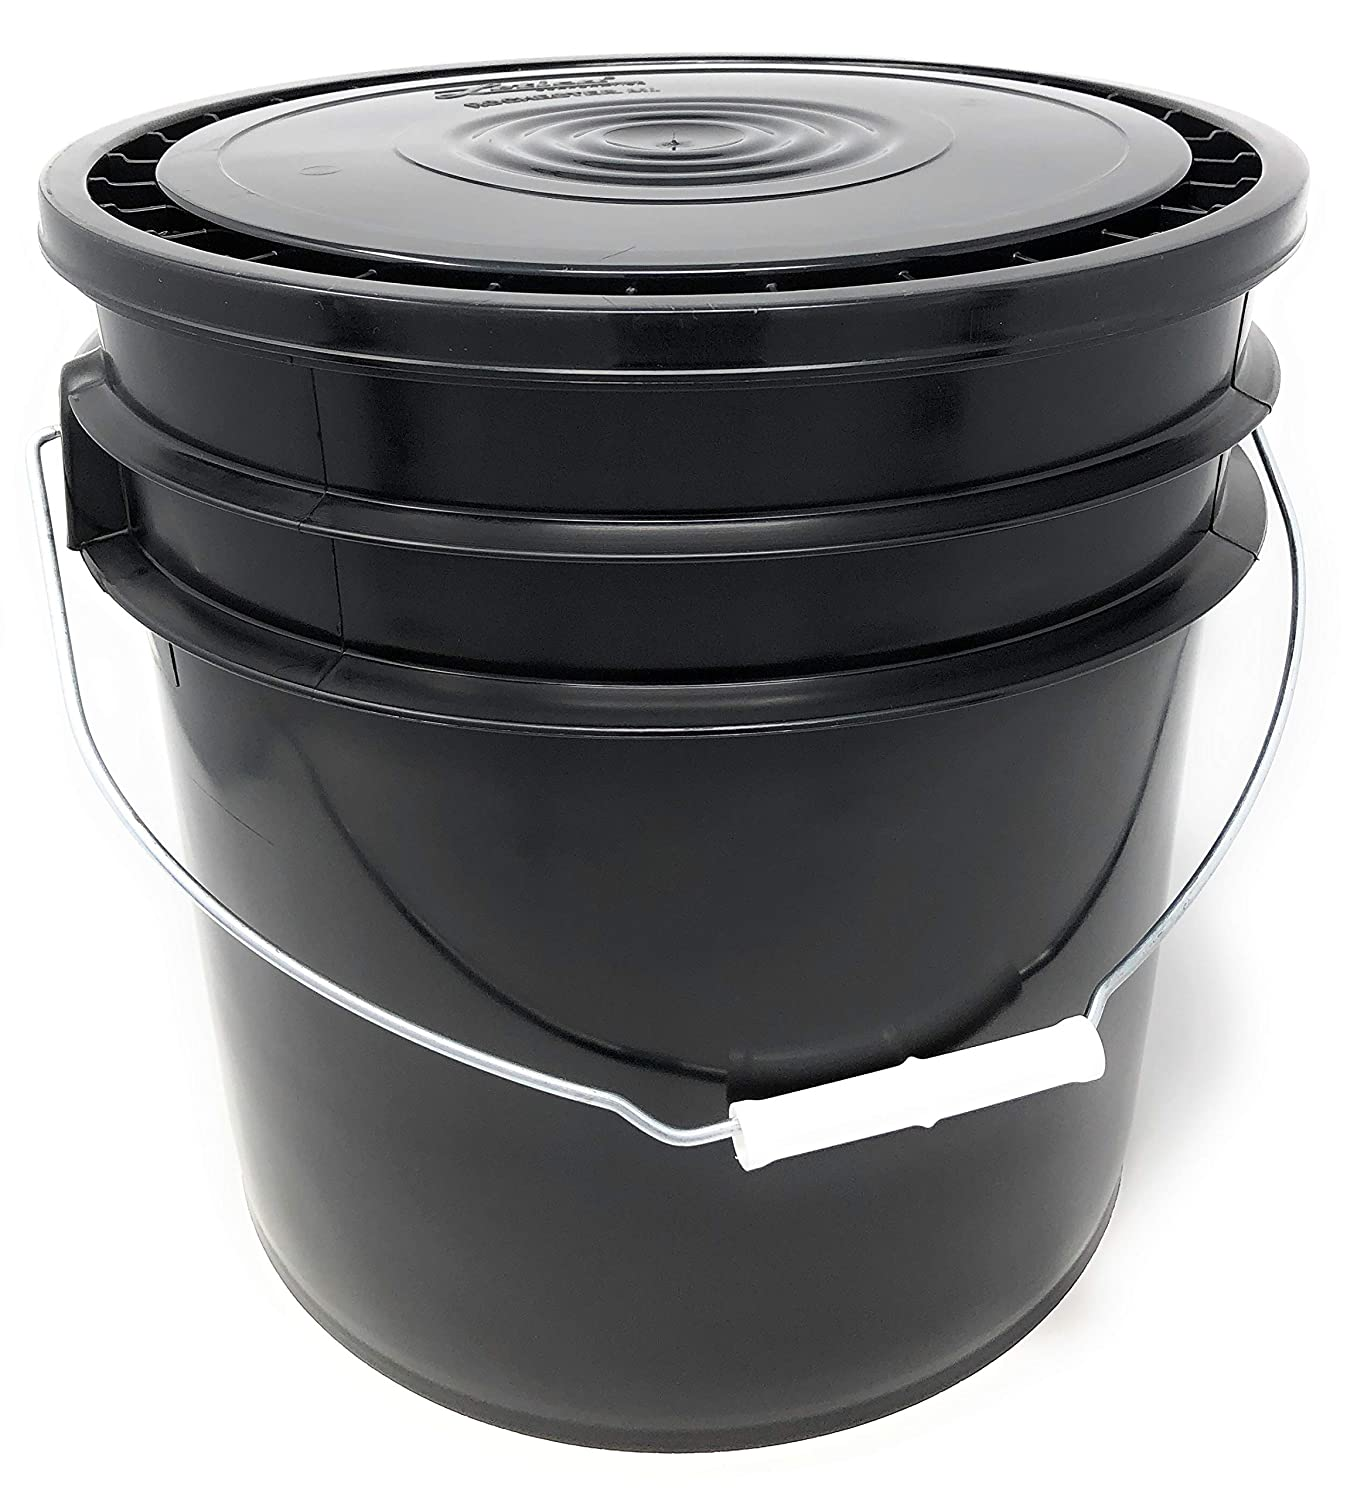 Hudson Exchange Premium 3.5 Gallon Bucket with Lid, HDPE, Black, 4 Pack